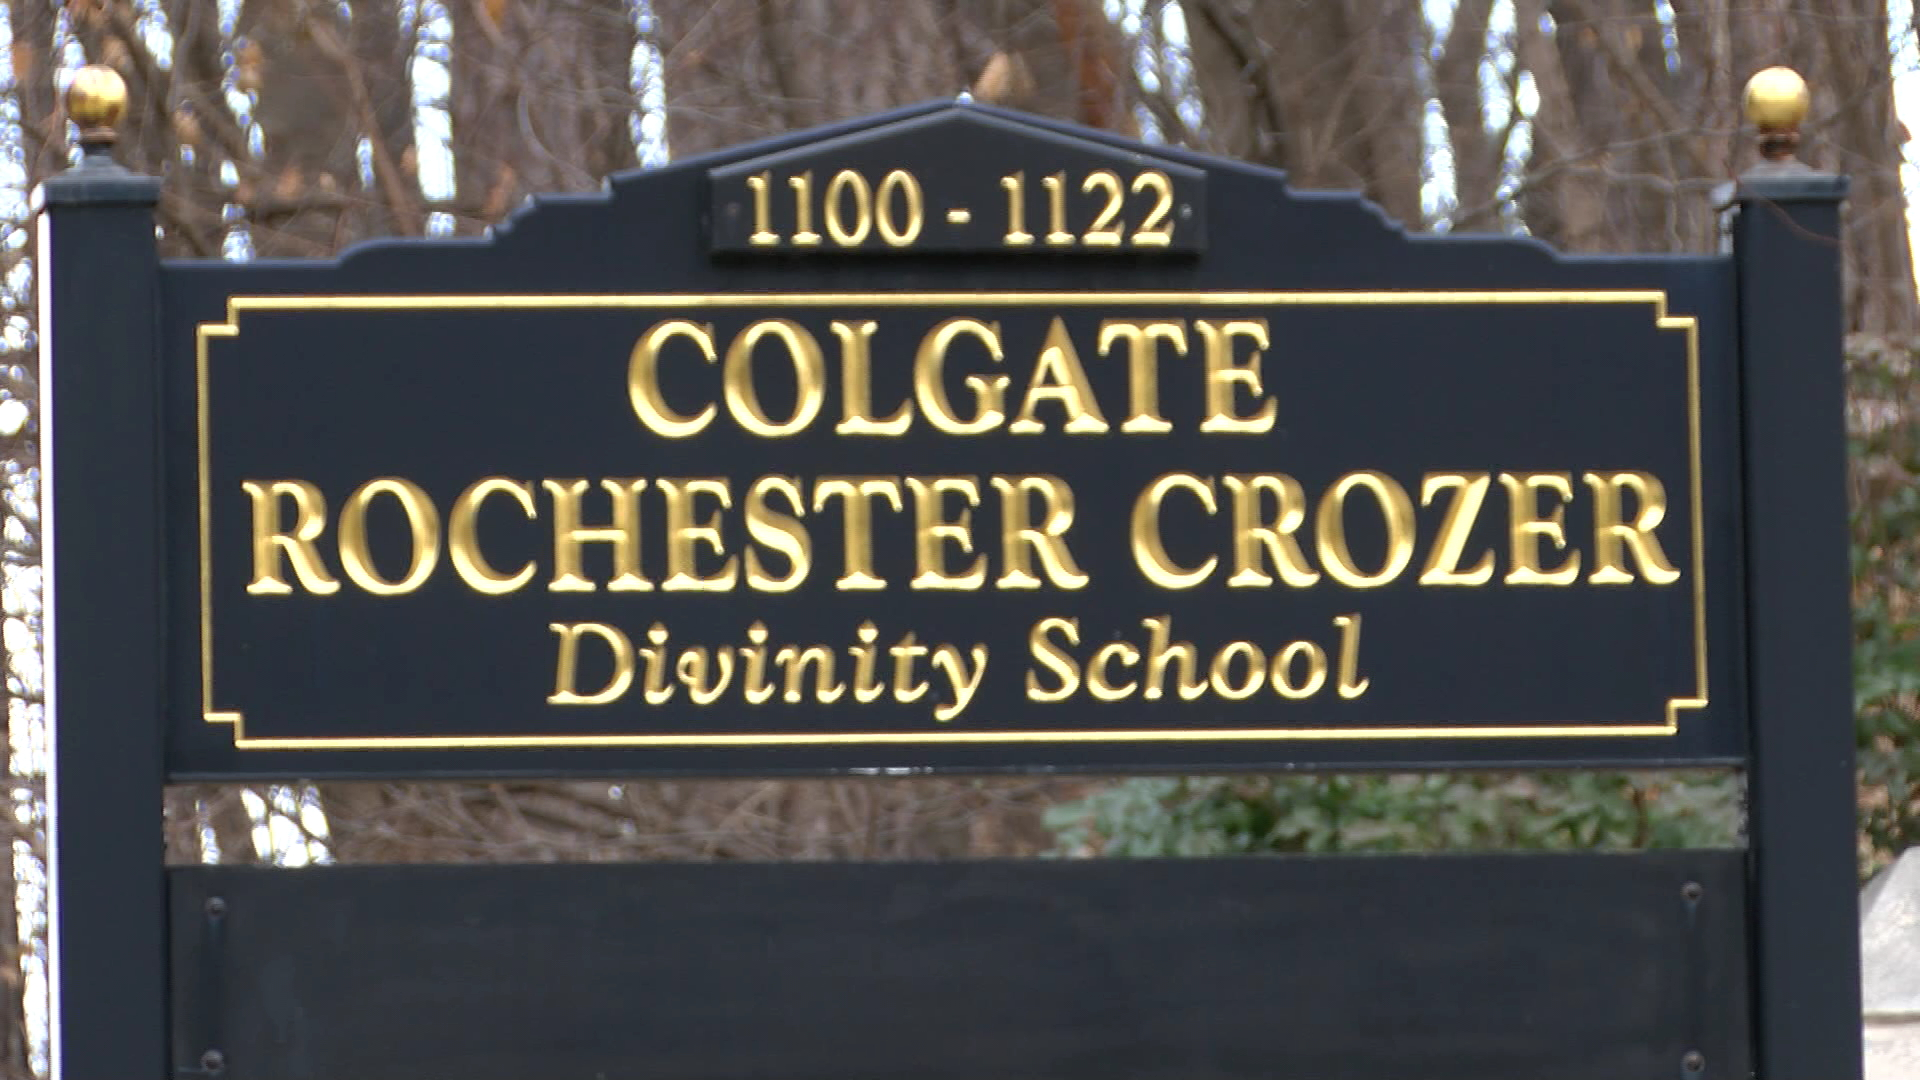 News 8 Honor Roll: What's in a name? | RochesterFirst